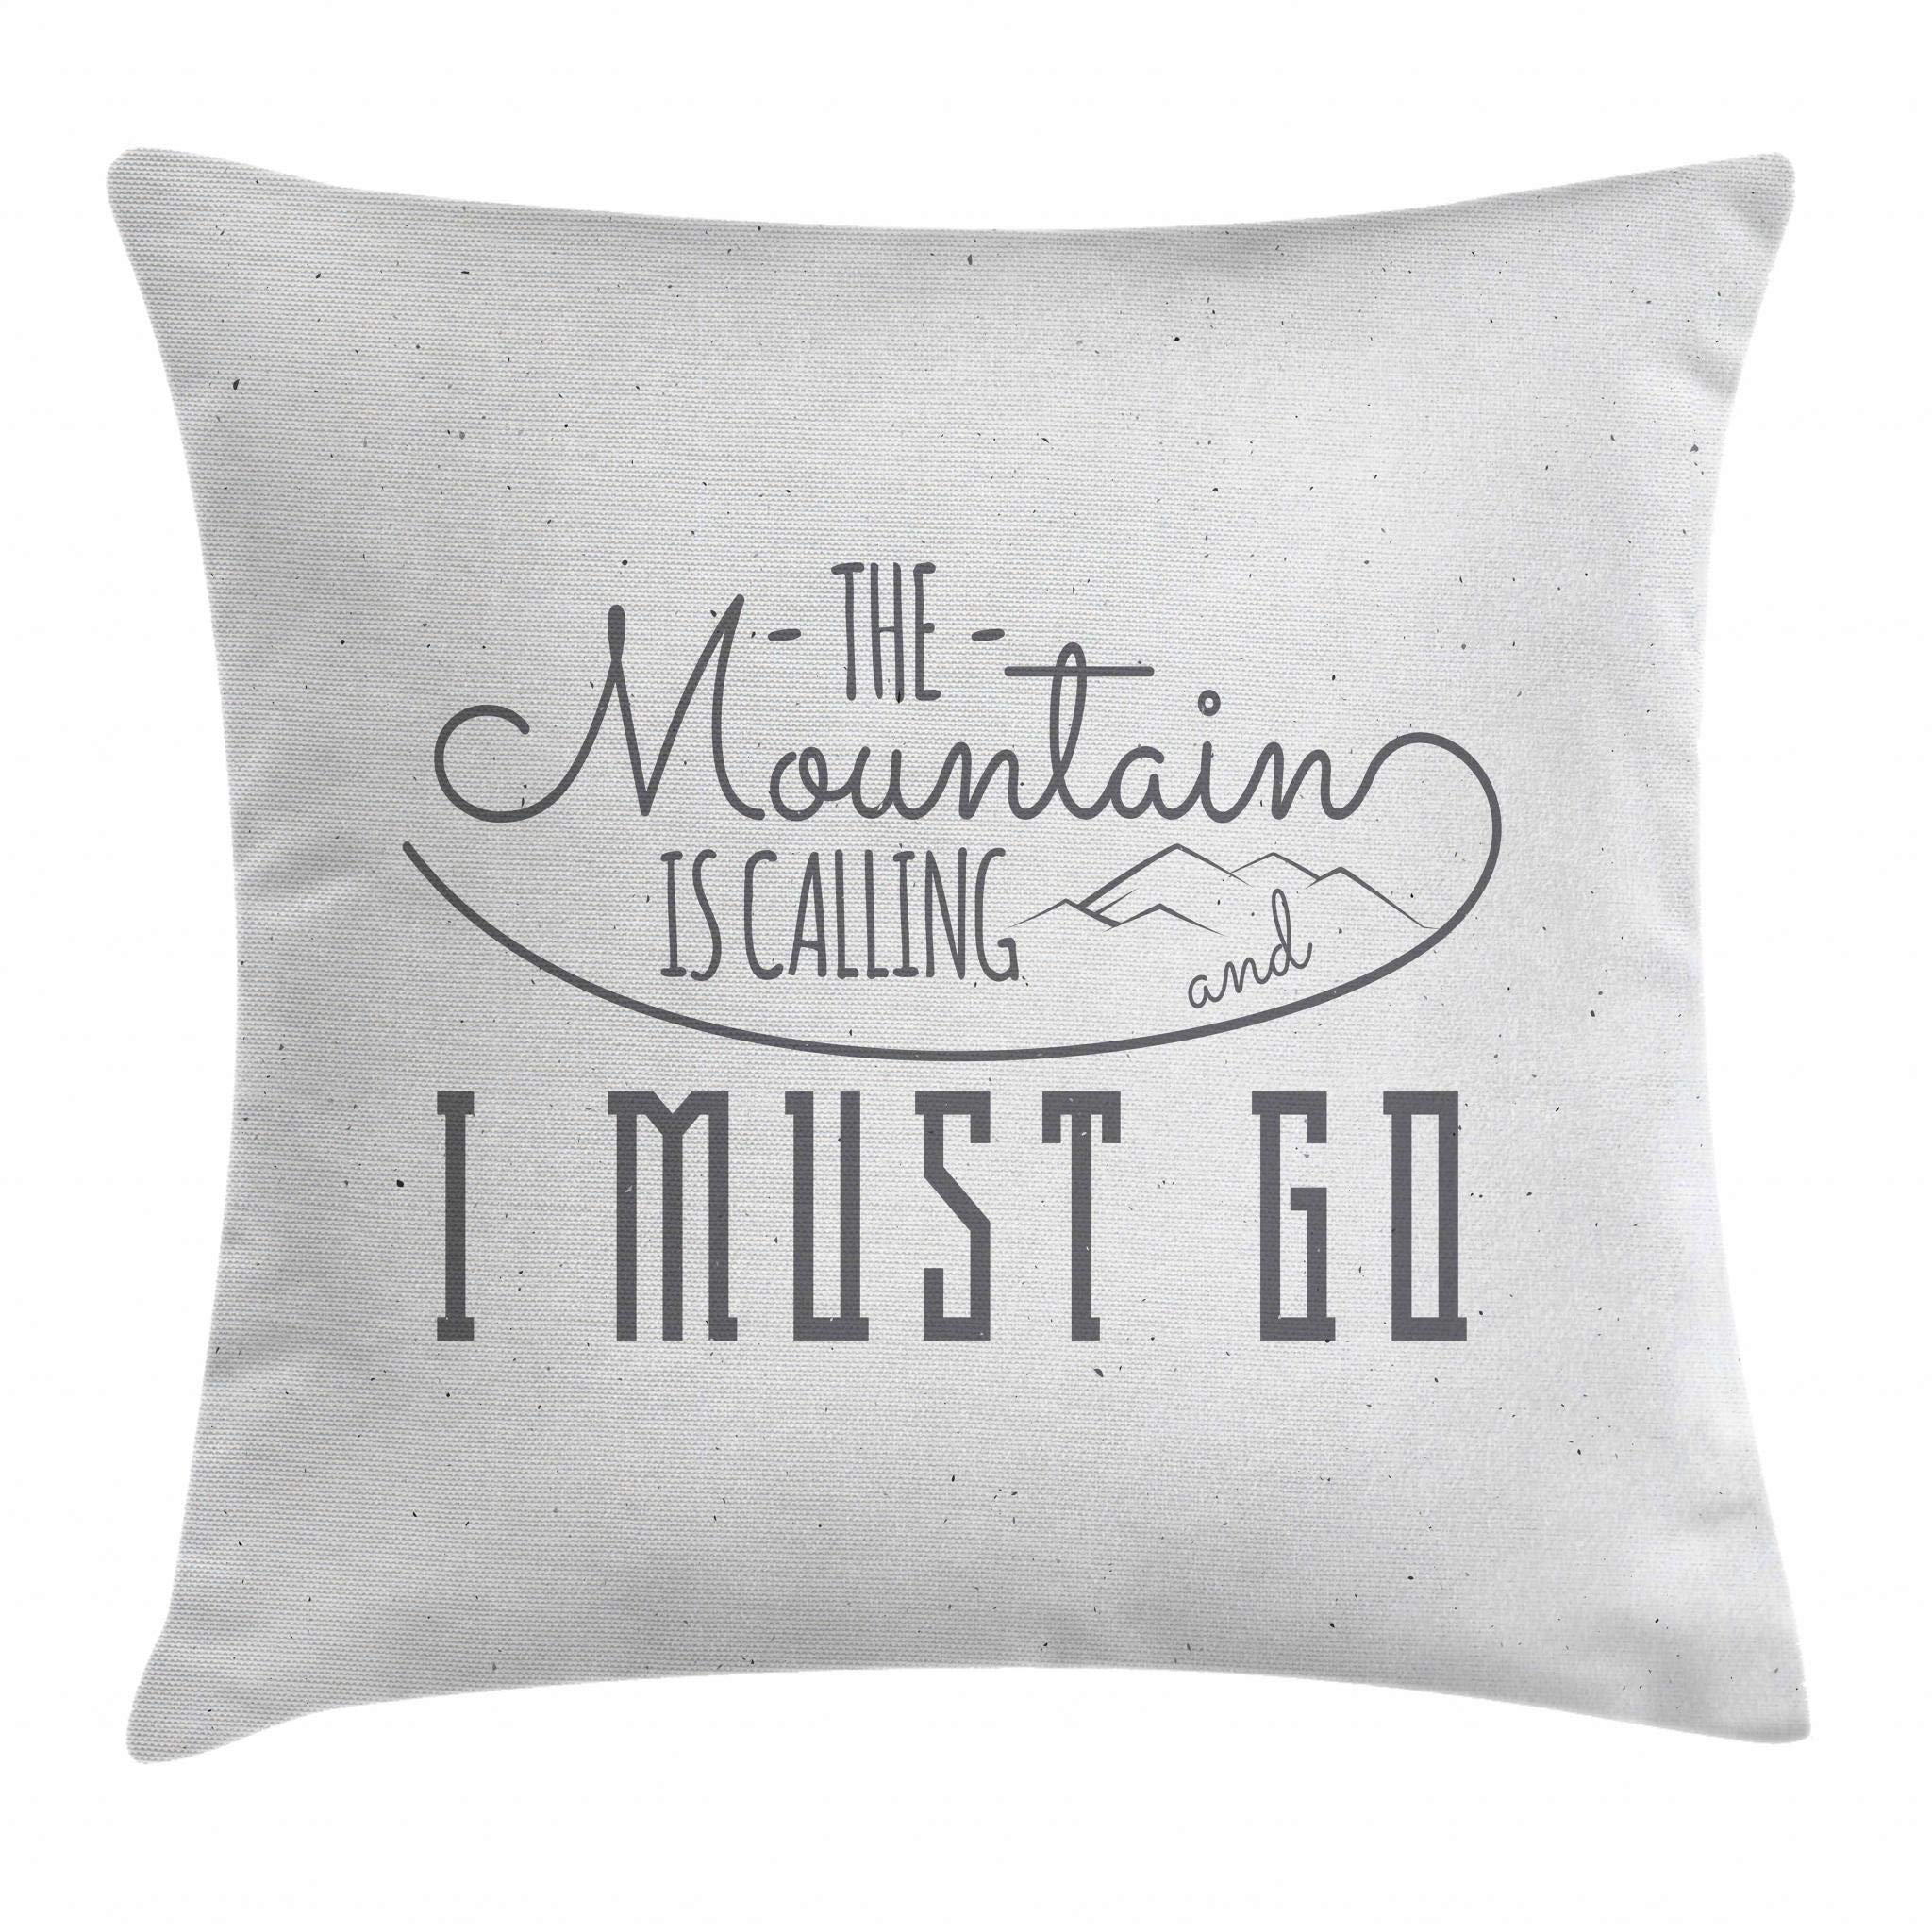 Ambesonne Adventure Throw Pillow Cushion Cover, Inspirational Typography Design Hiking Woods Mountains Call of The Nature Theme, Decorative Square Accent Pillow Case, 18 X 18 Inches, Grey White